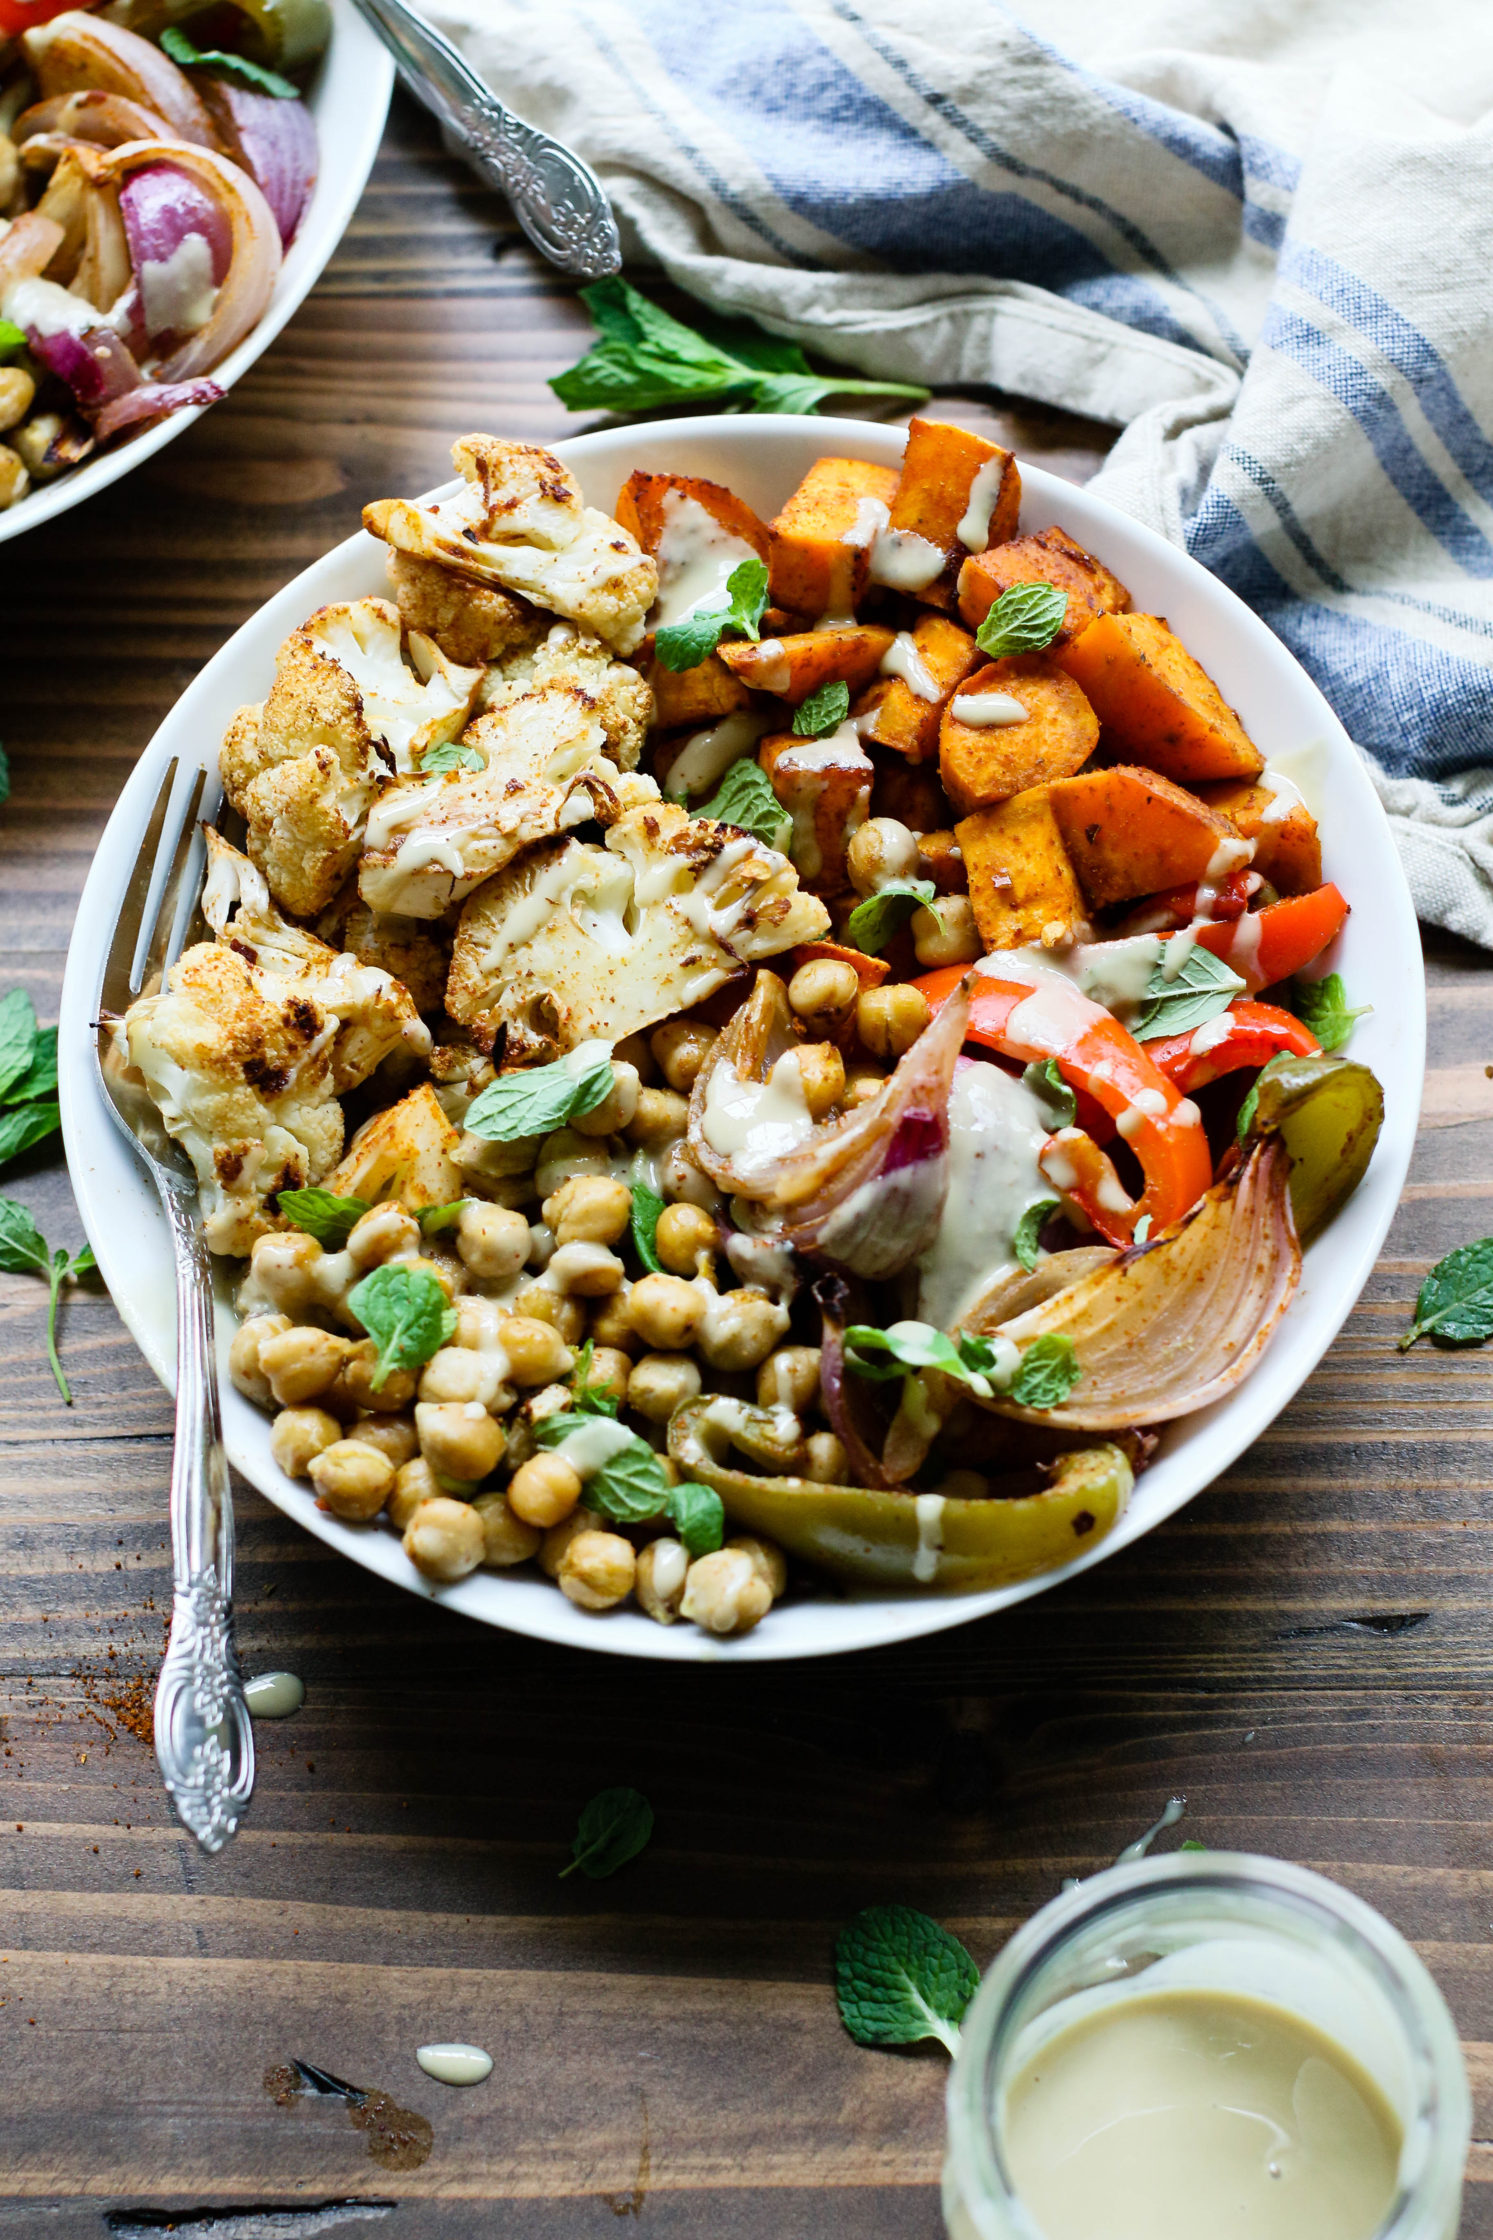 Minty Moroccan Sheet Pan Dinner with Harissa and Tahini by Flora & Vino